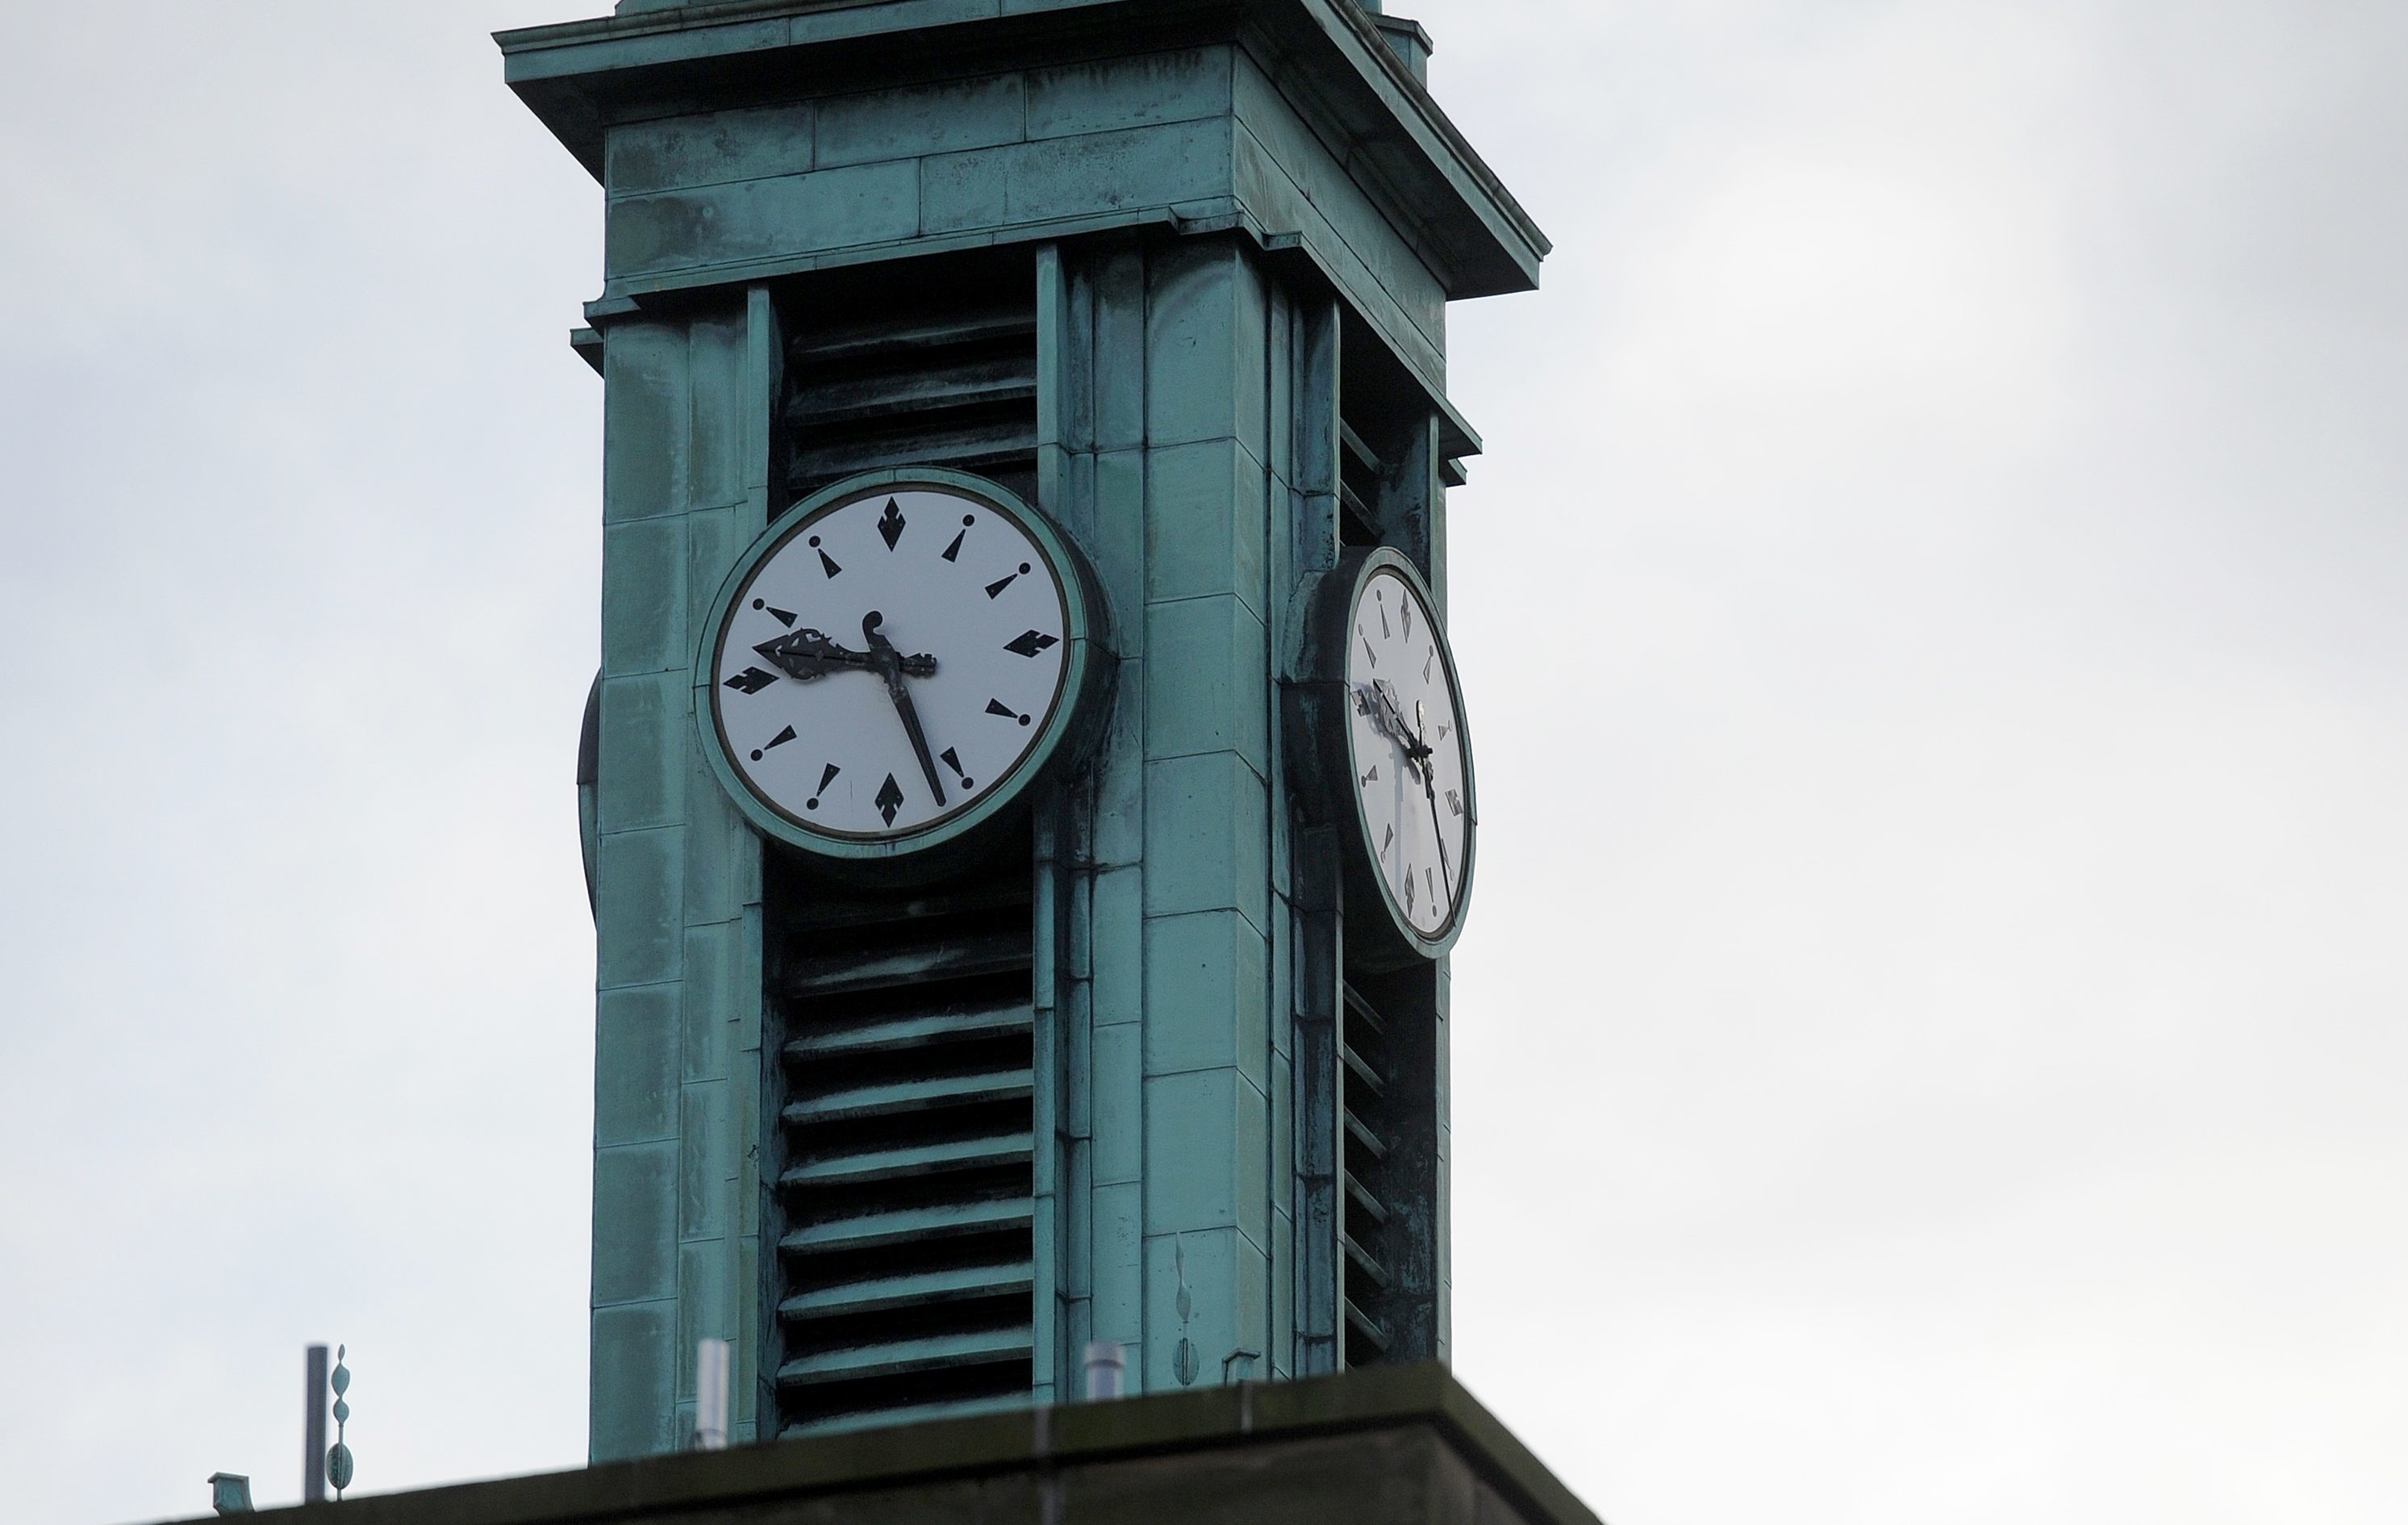 The clock tower on Kirkcaldy Town House